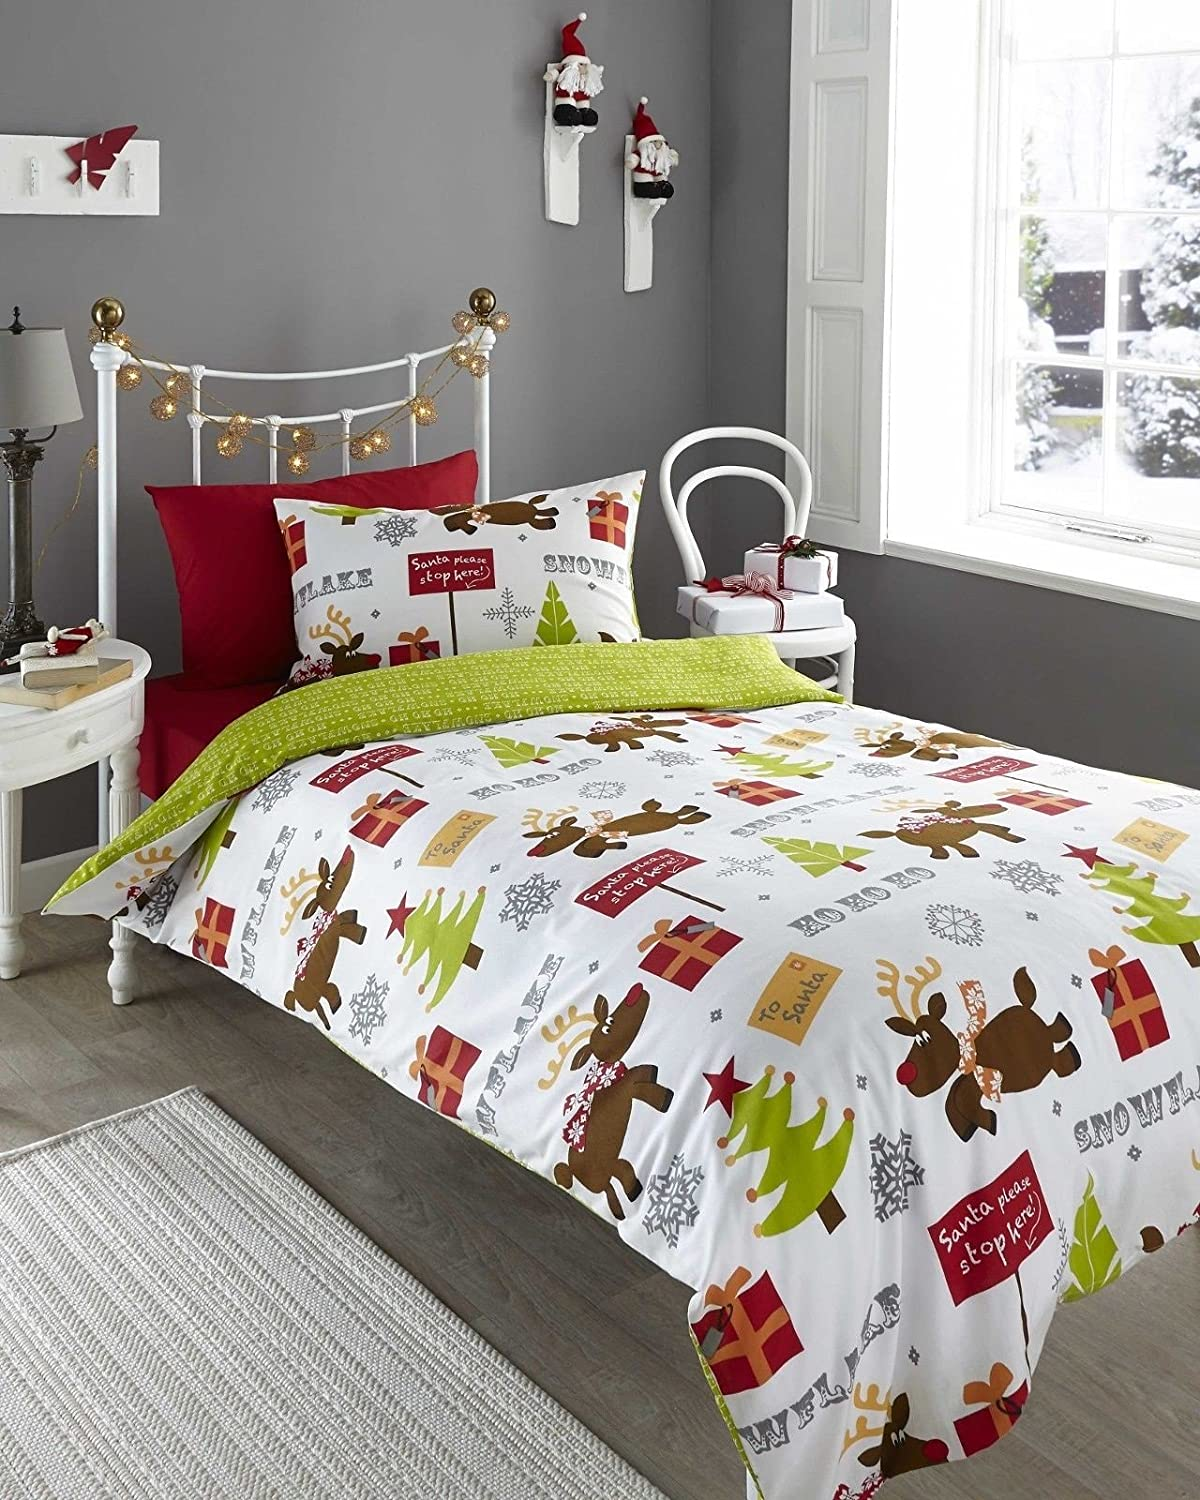 Exceptional Christmas Bed Linen Sets Part - 6: Reindeer Rudolf Single Duvet Cover U0026 P/case Bedding Bed Set Christmas Xmas  By Homespace Direct: Amazon.co.uk: Kitchen U0026 Home